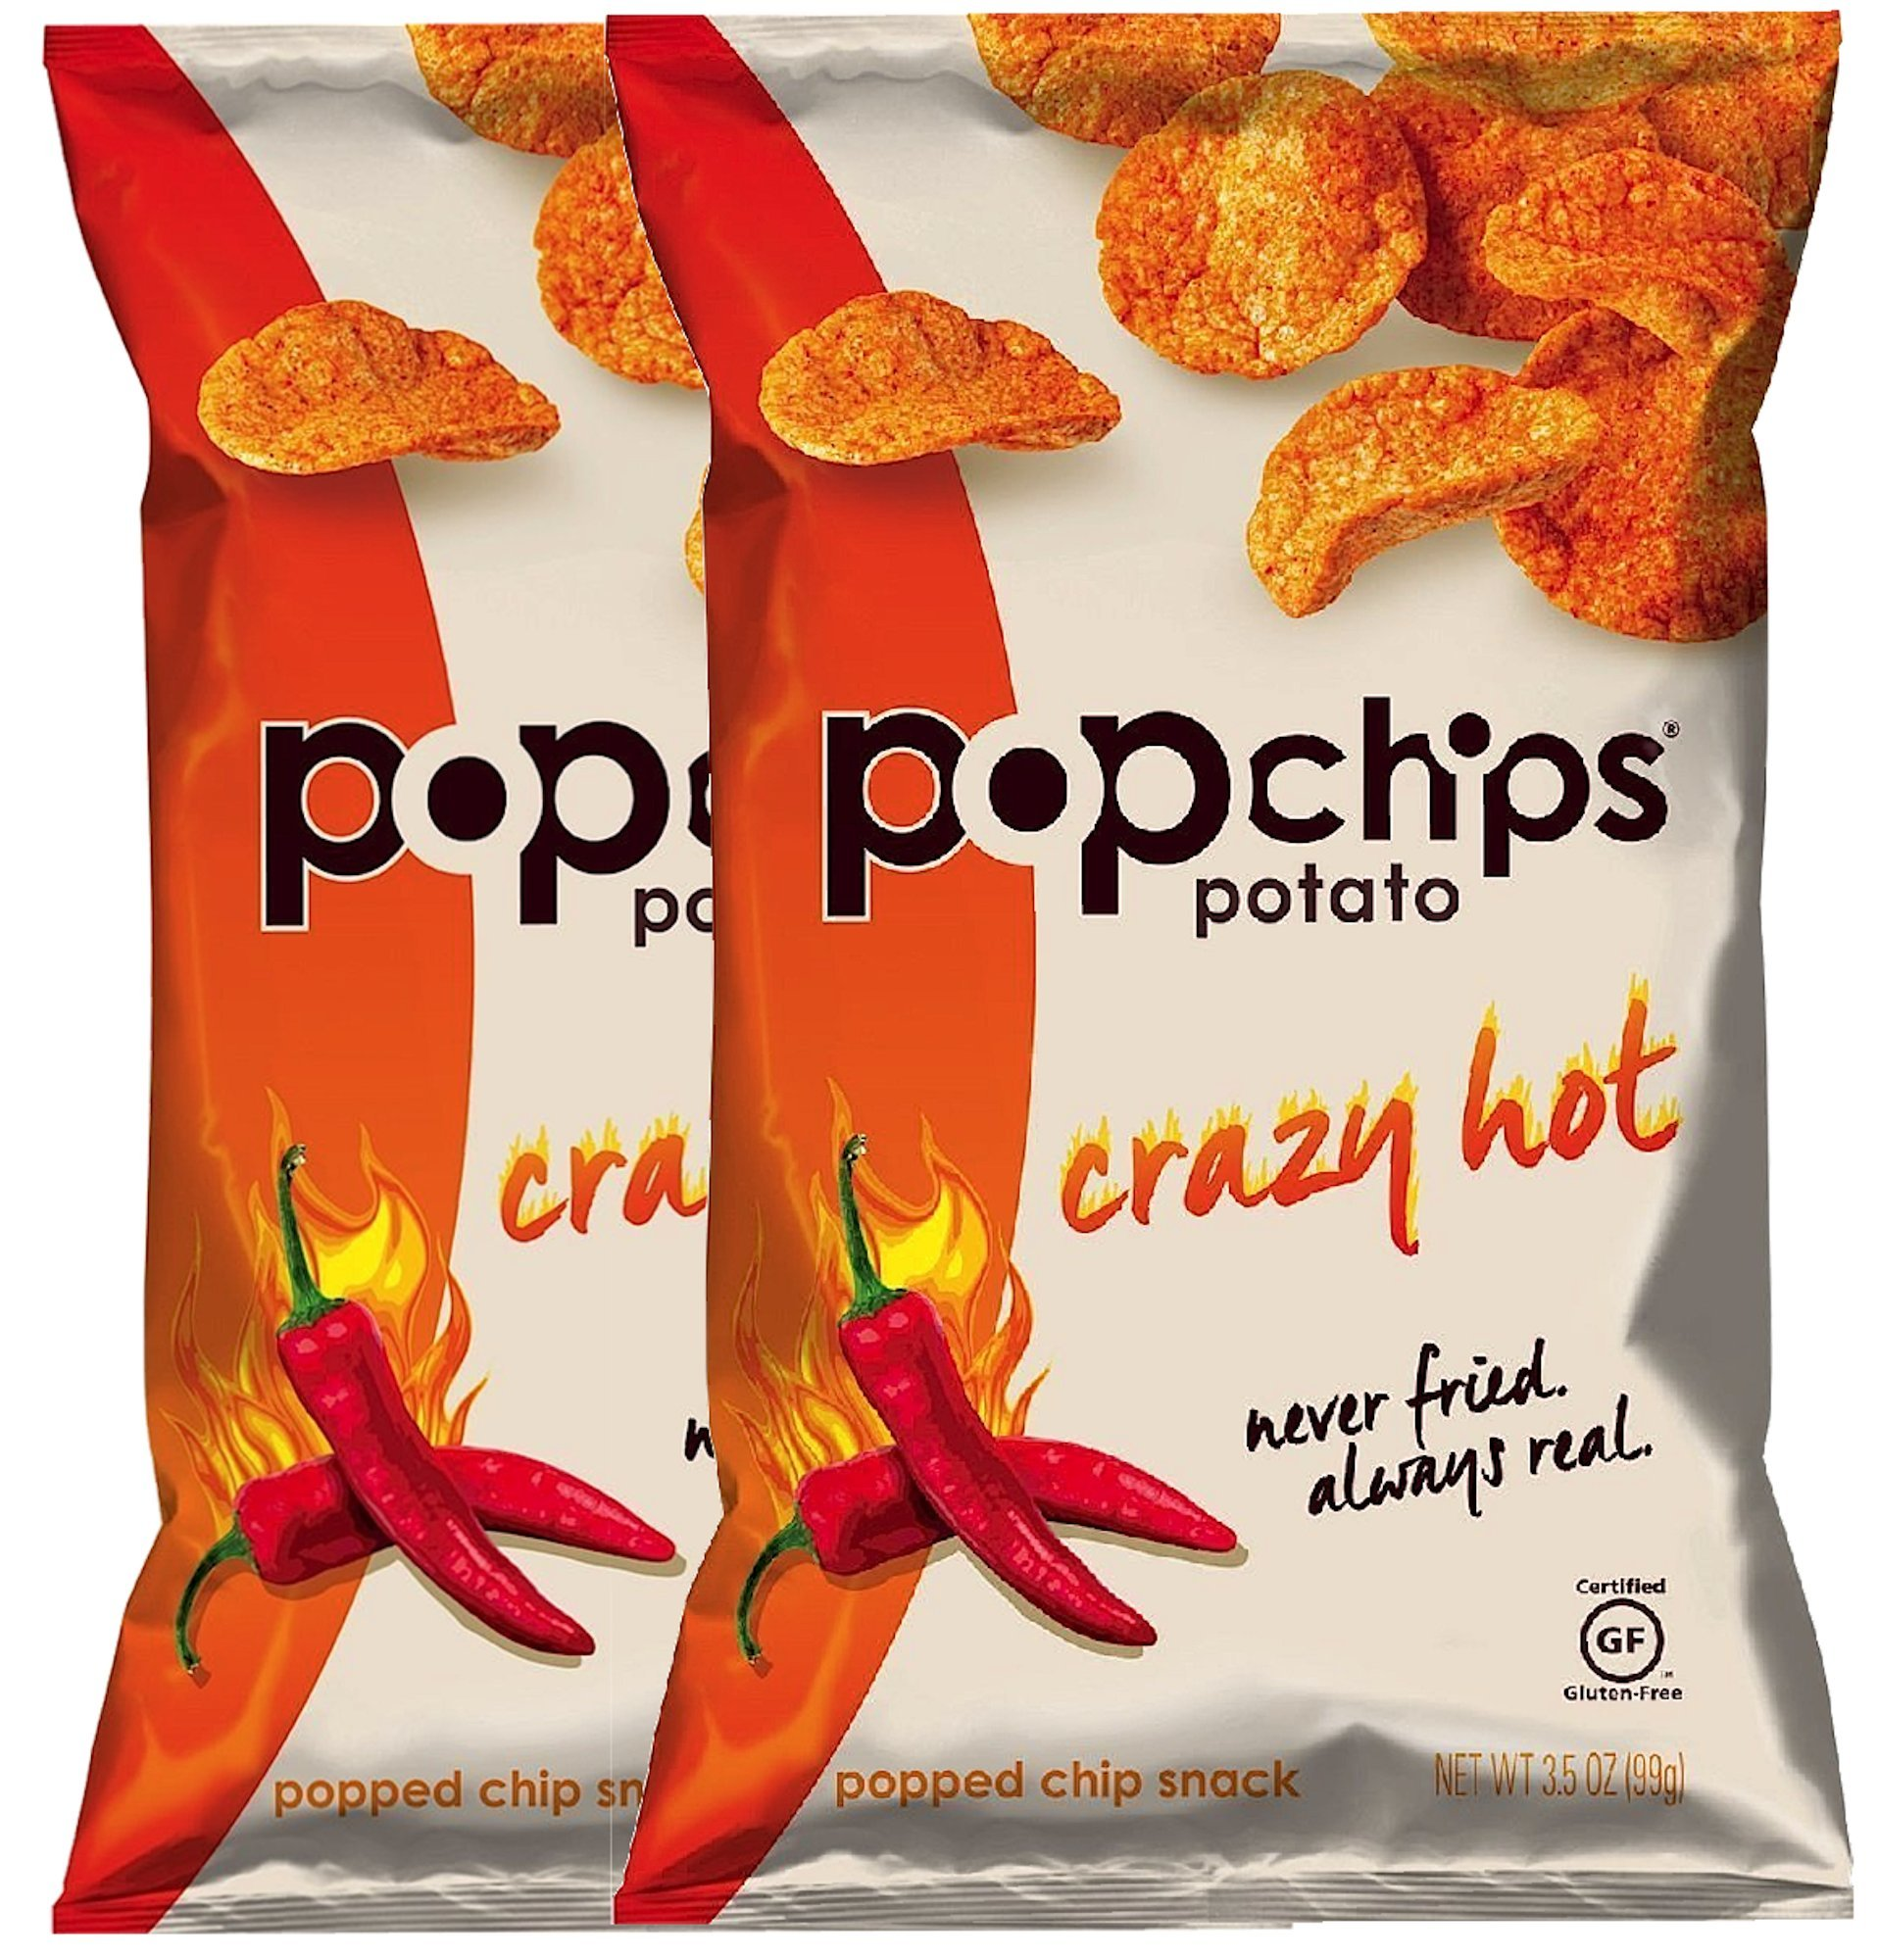 Popchips Crazy Hot Gluten Free Potato Chips, 3.5 oz (2)